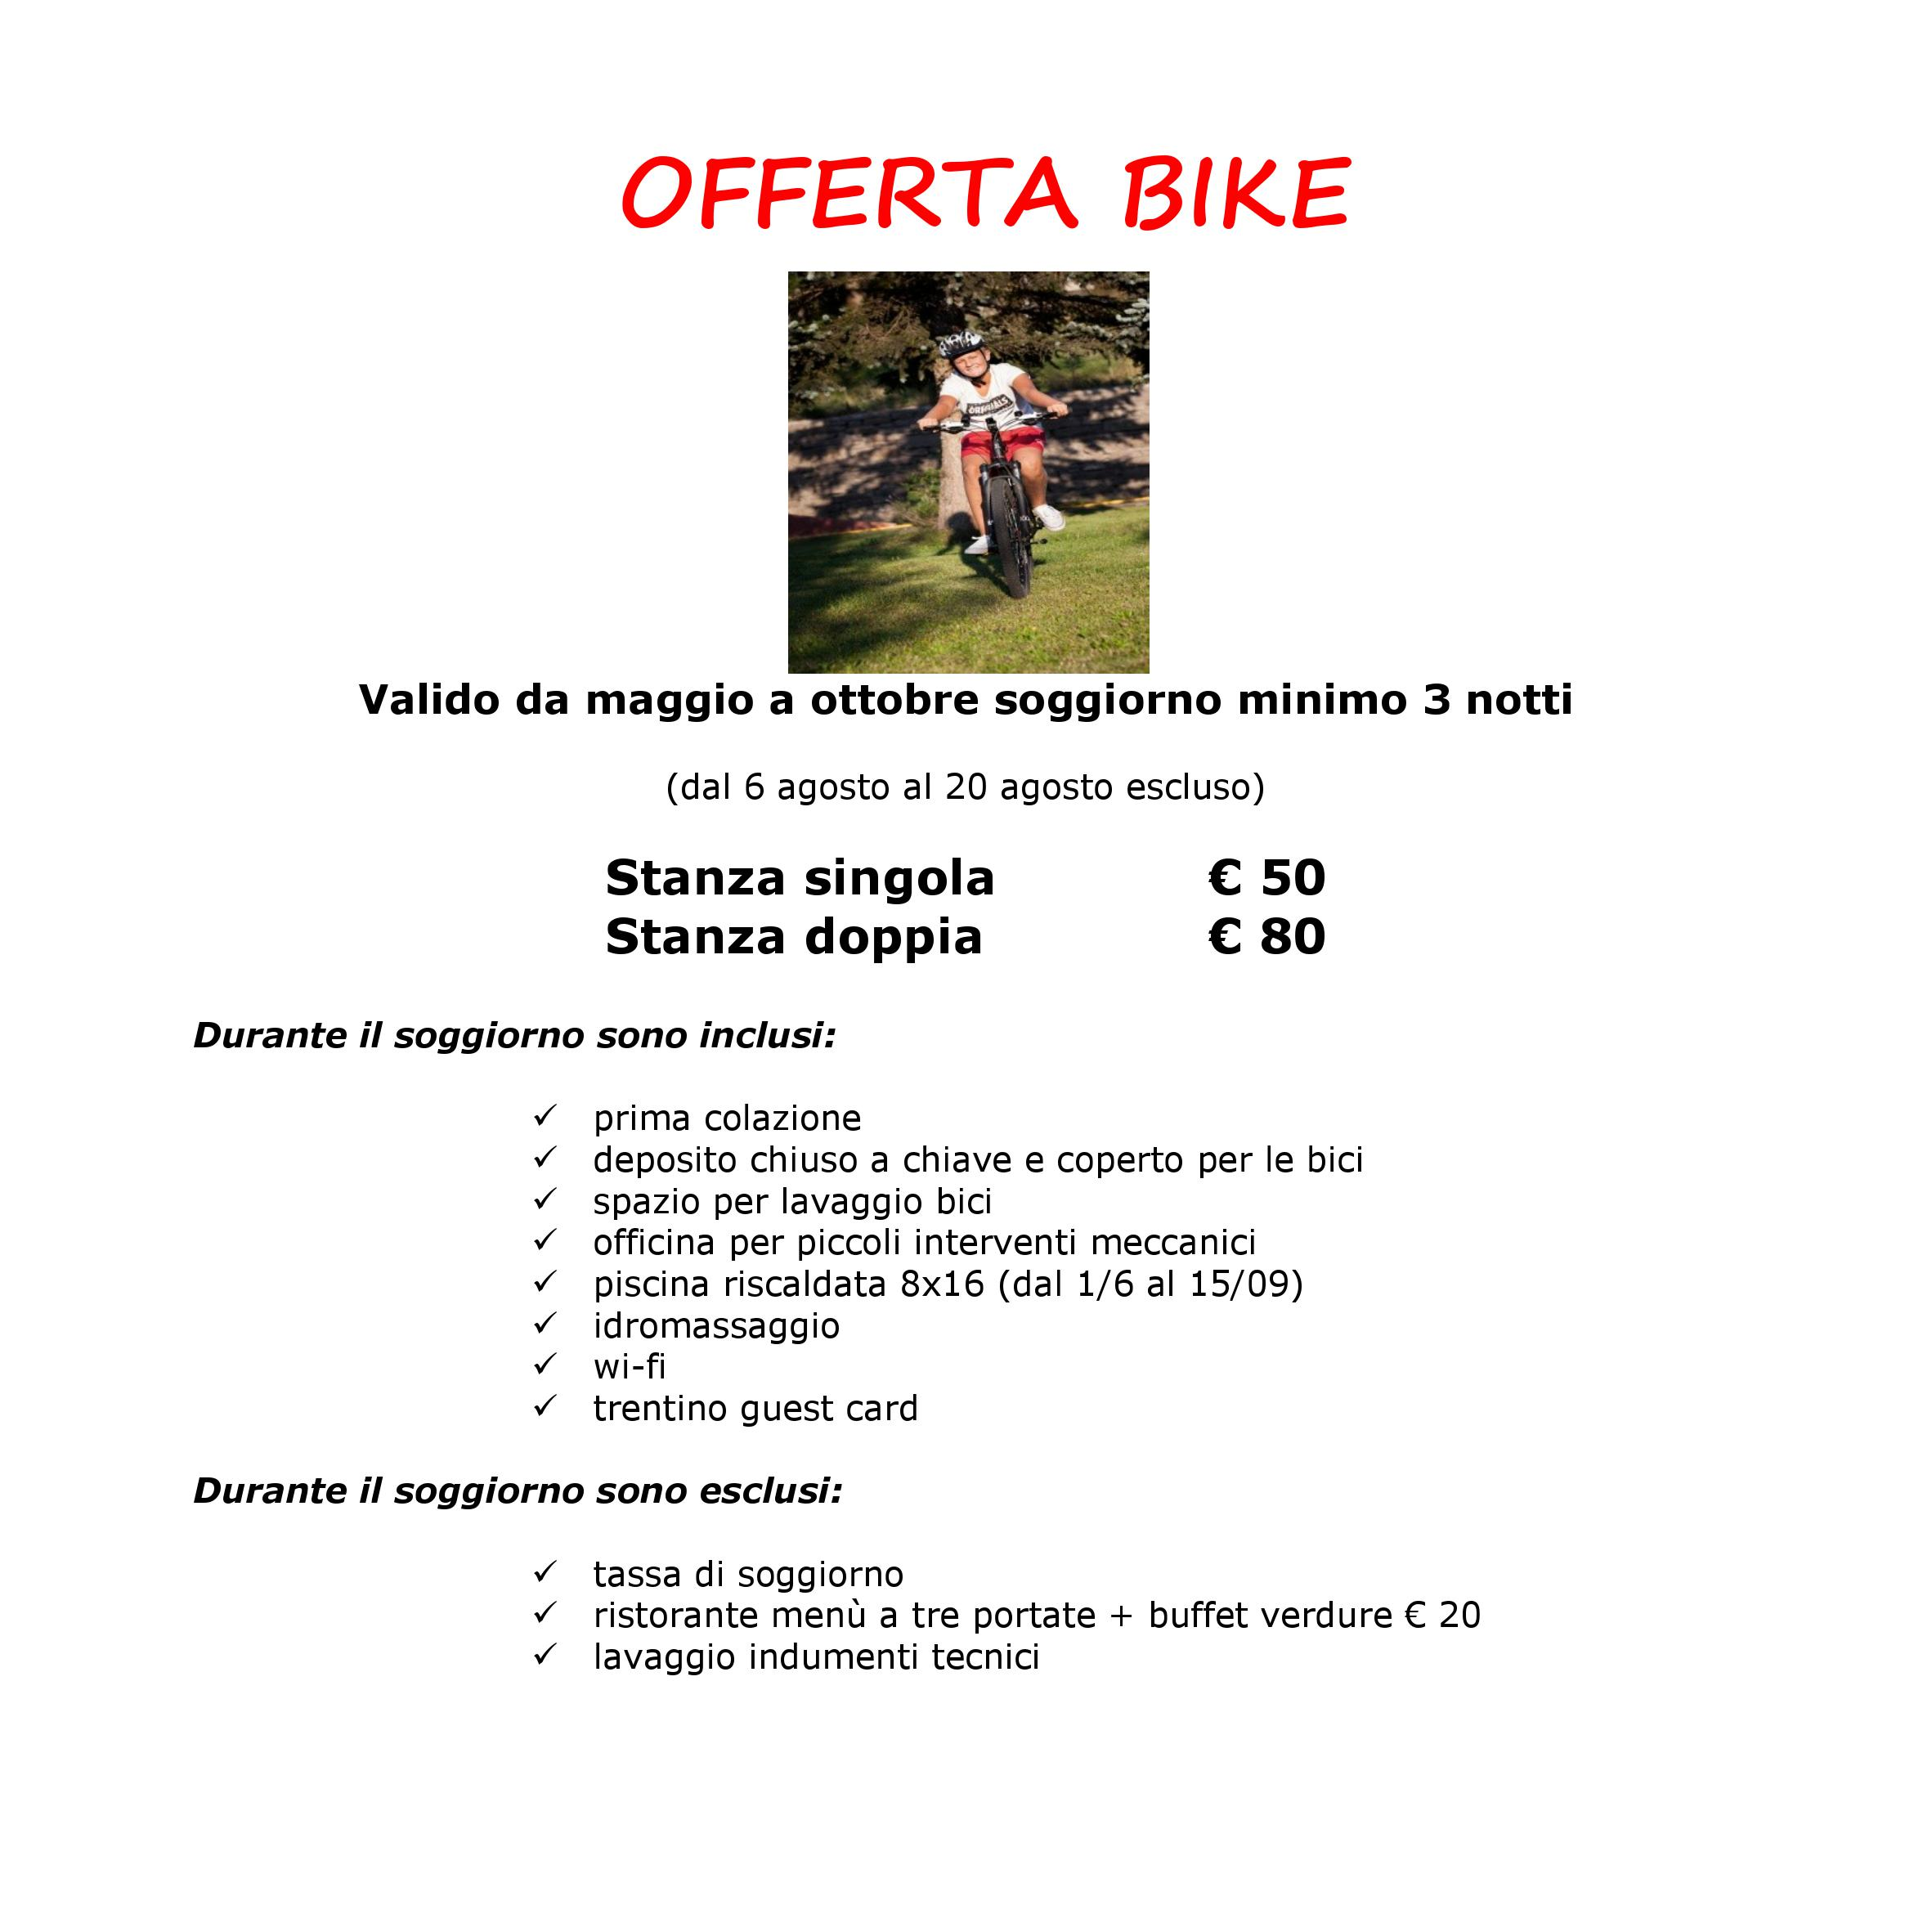 immagine offerta bike 2018 it